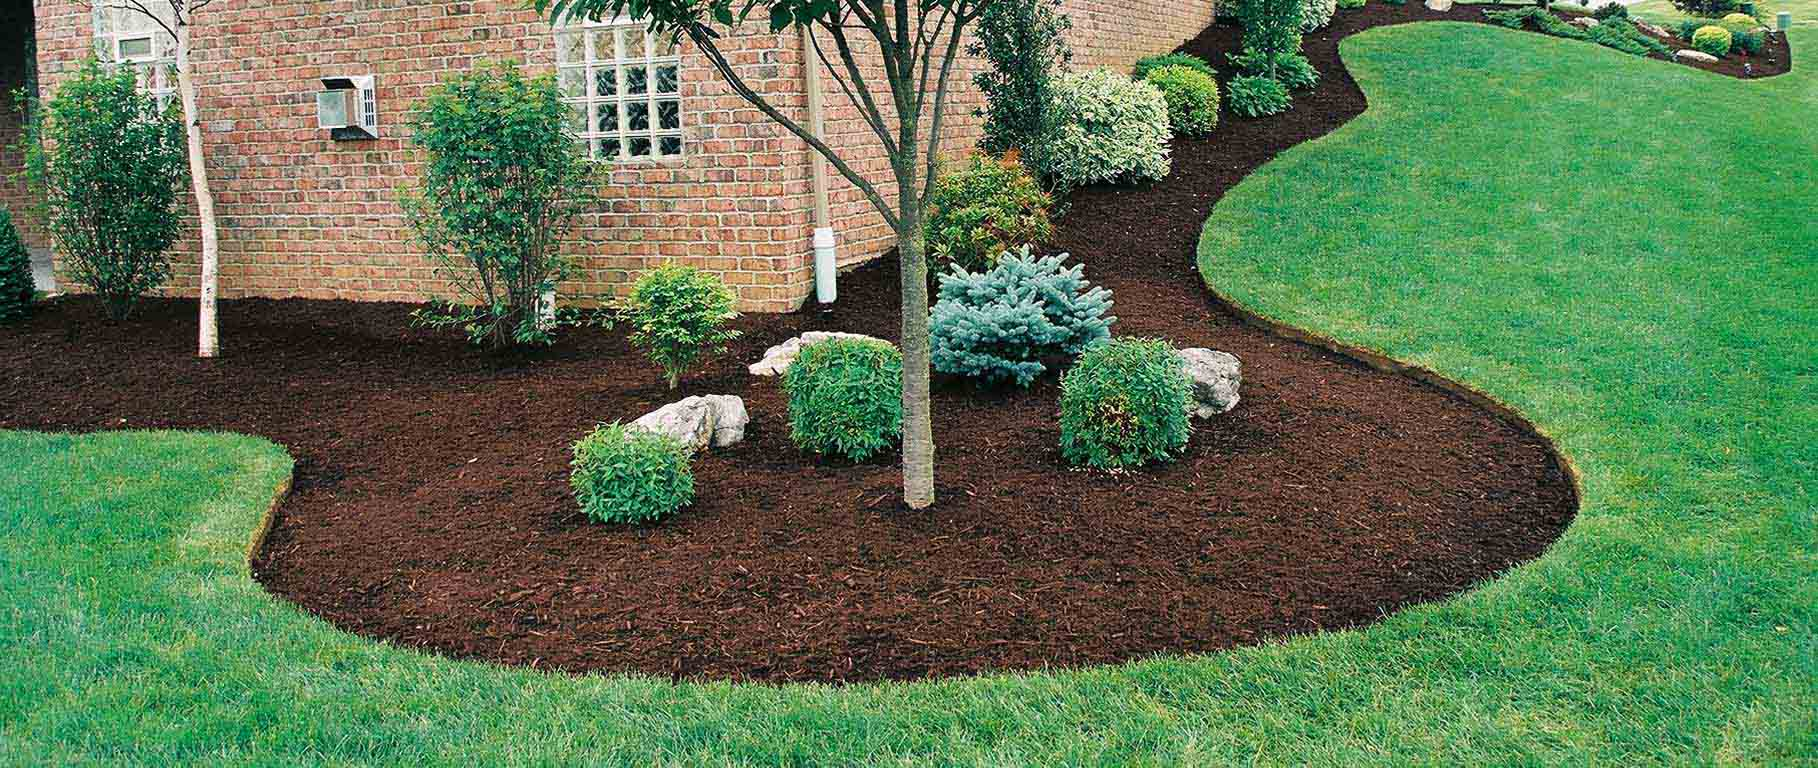 Yard Works - Landscaping Services in Sommerville Ma